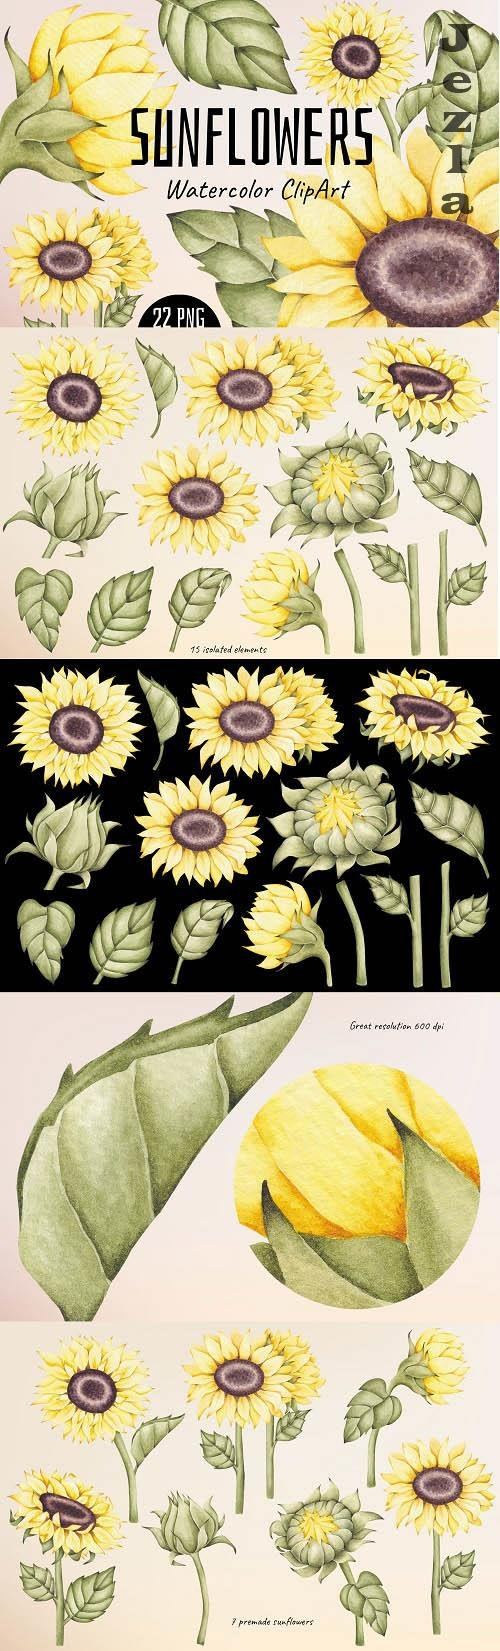 Watercolor ClipArt Sunflowers - 1436254